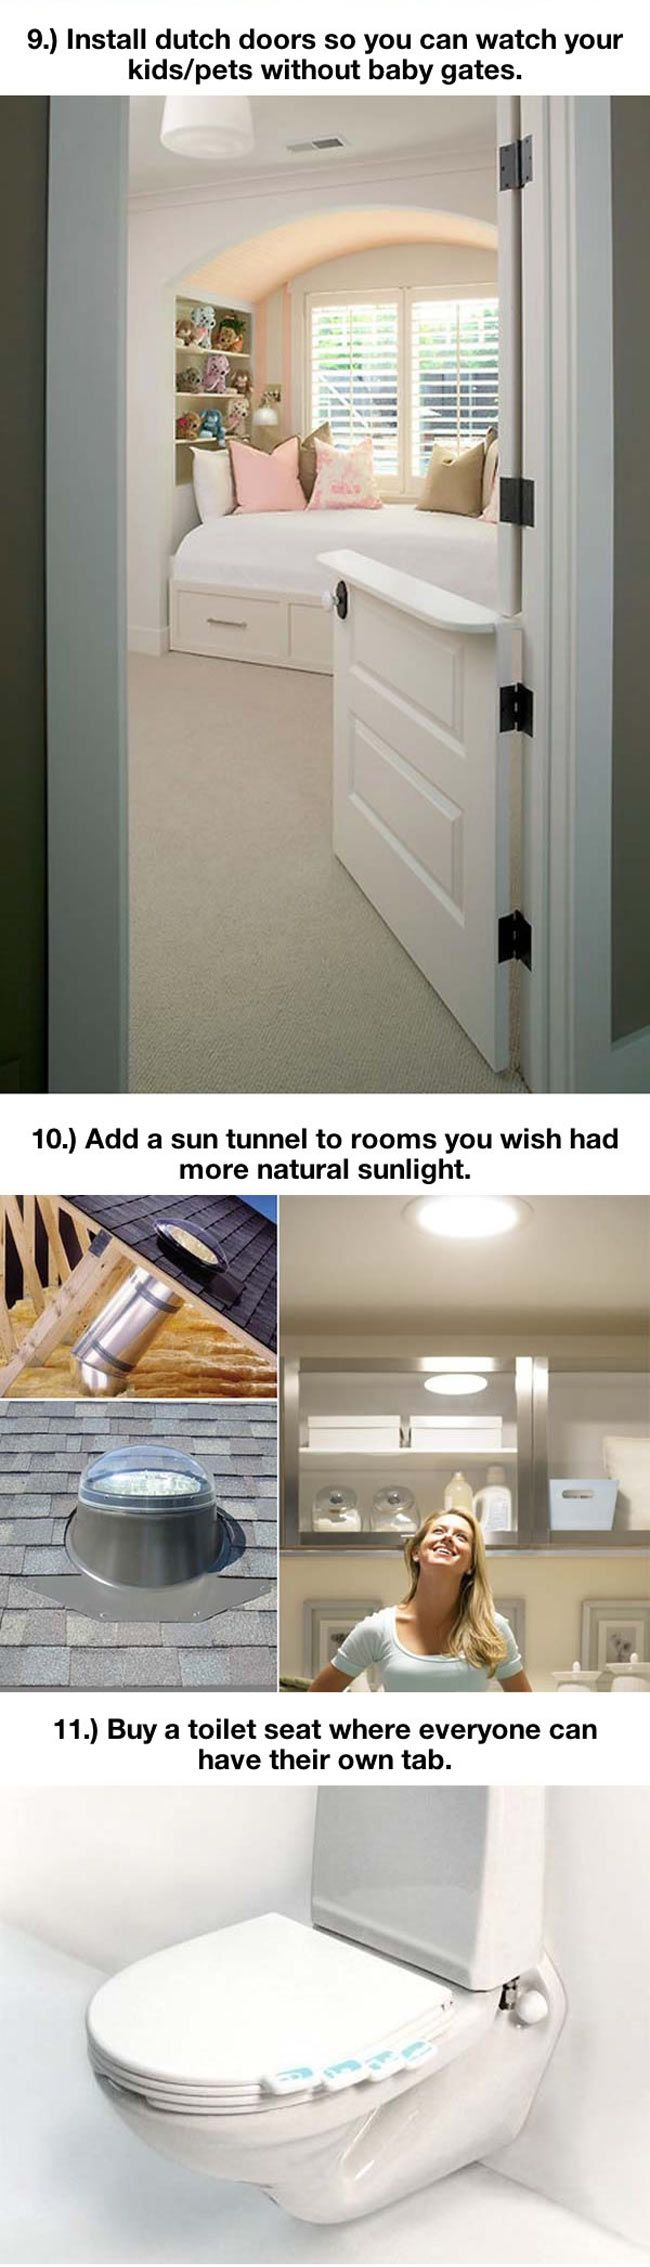 Smart ideas for the home. Recessed outlets, Dutch (half) doors, toilet seat with multiple seats, creative ways to use space.